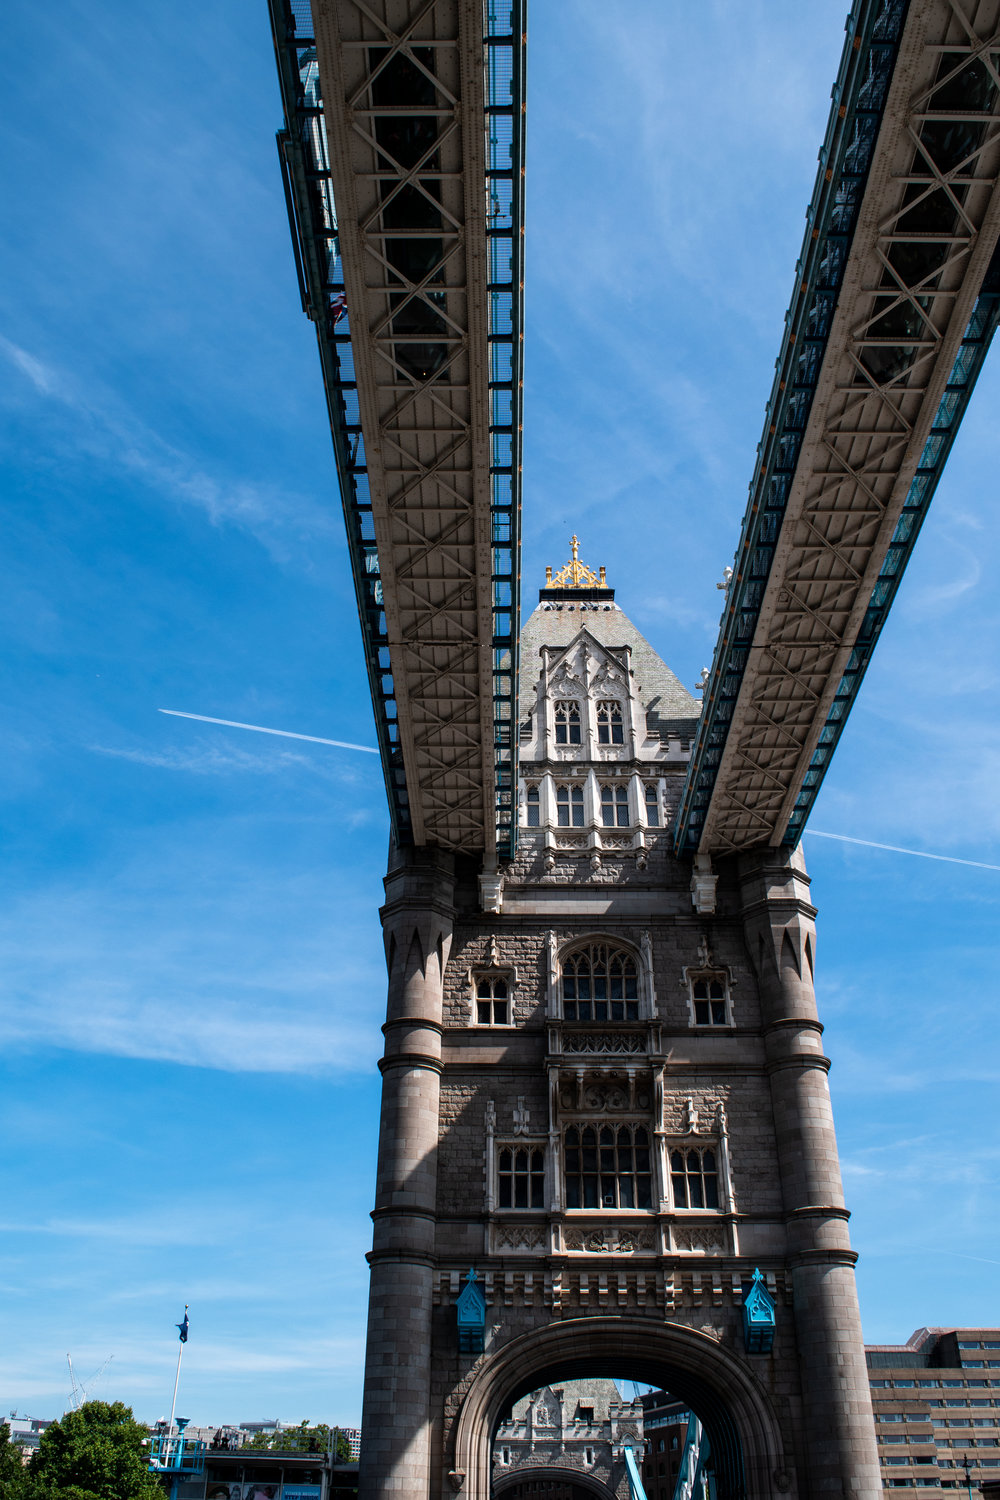 tower bridge 7 jpg.jpg